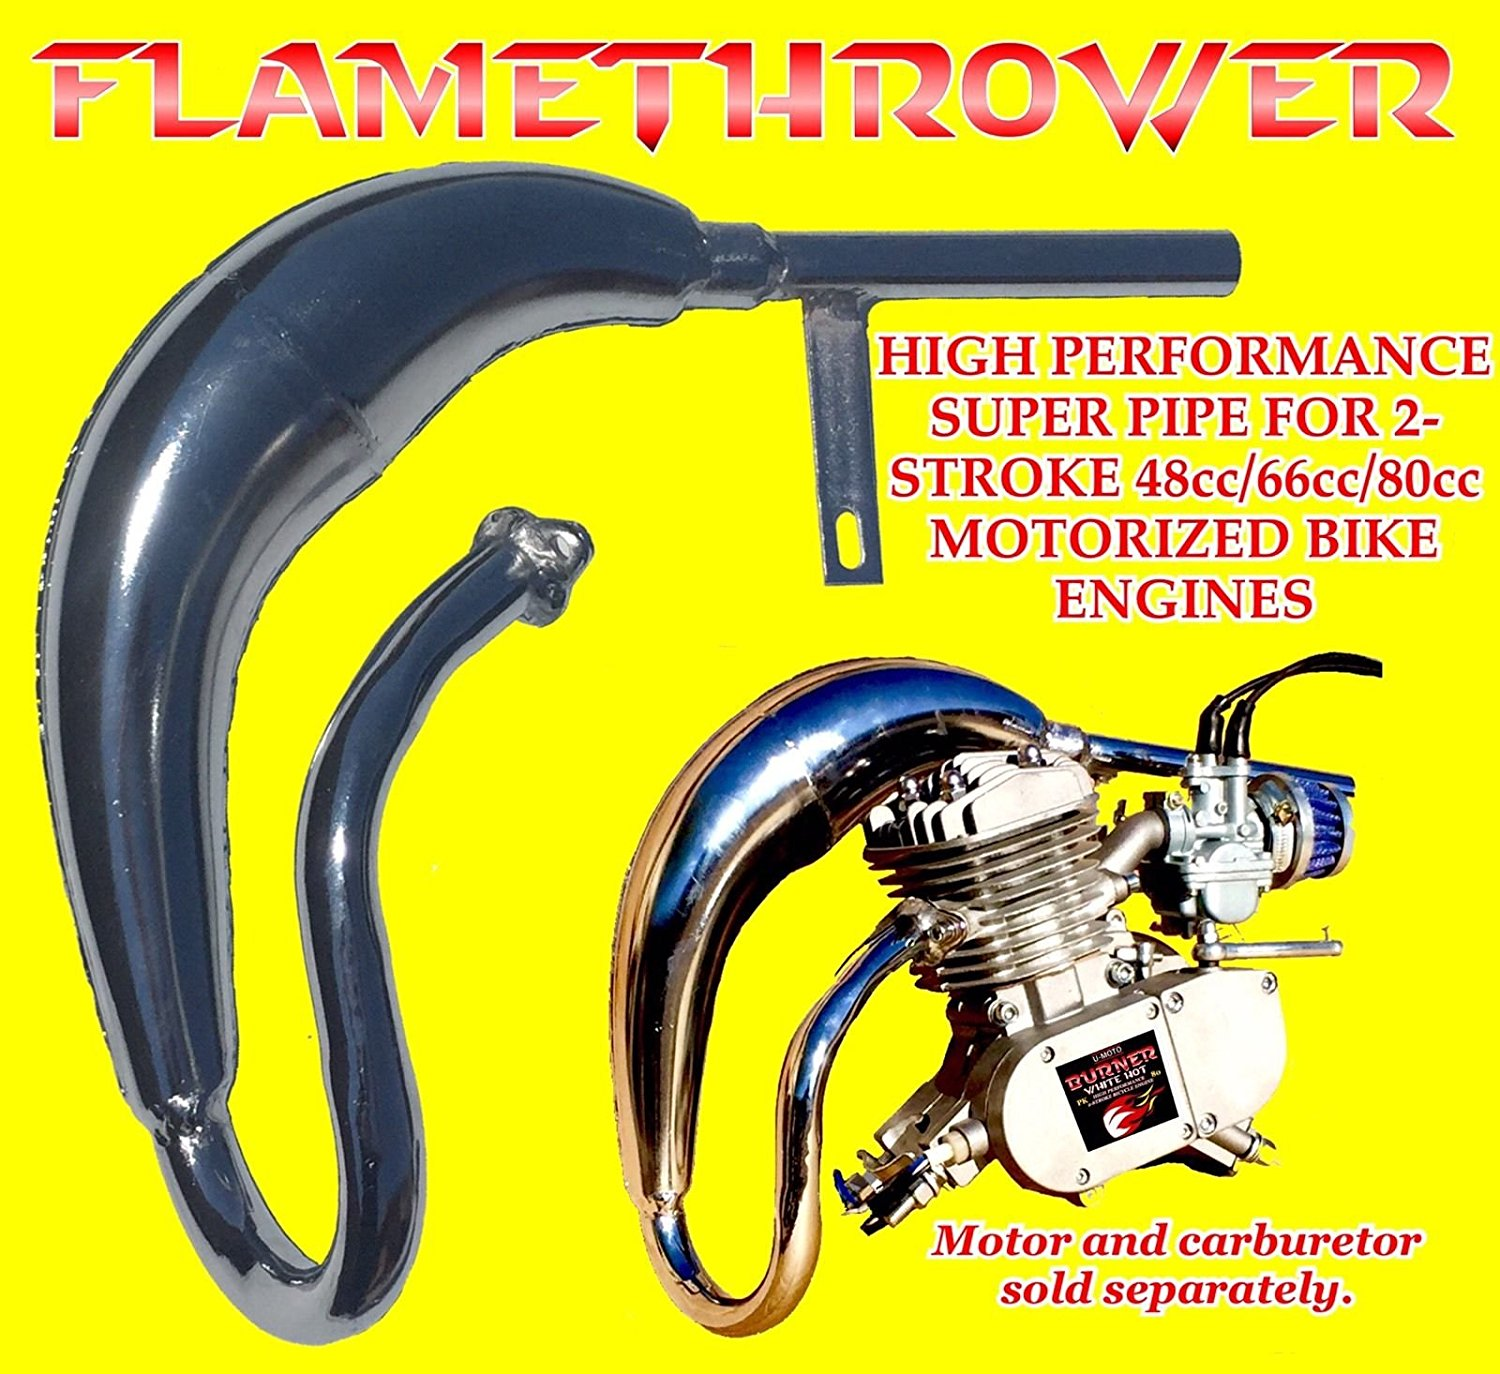 HIGH PERFORMANCE EXHAUST FOR DIY 2-STROKE 66CC/80CC COMPLETE MOTORIZED BIKE KITS